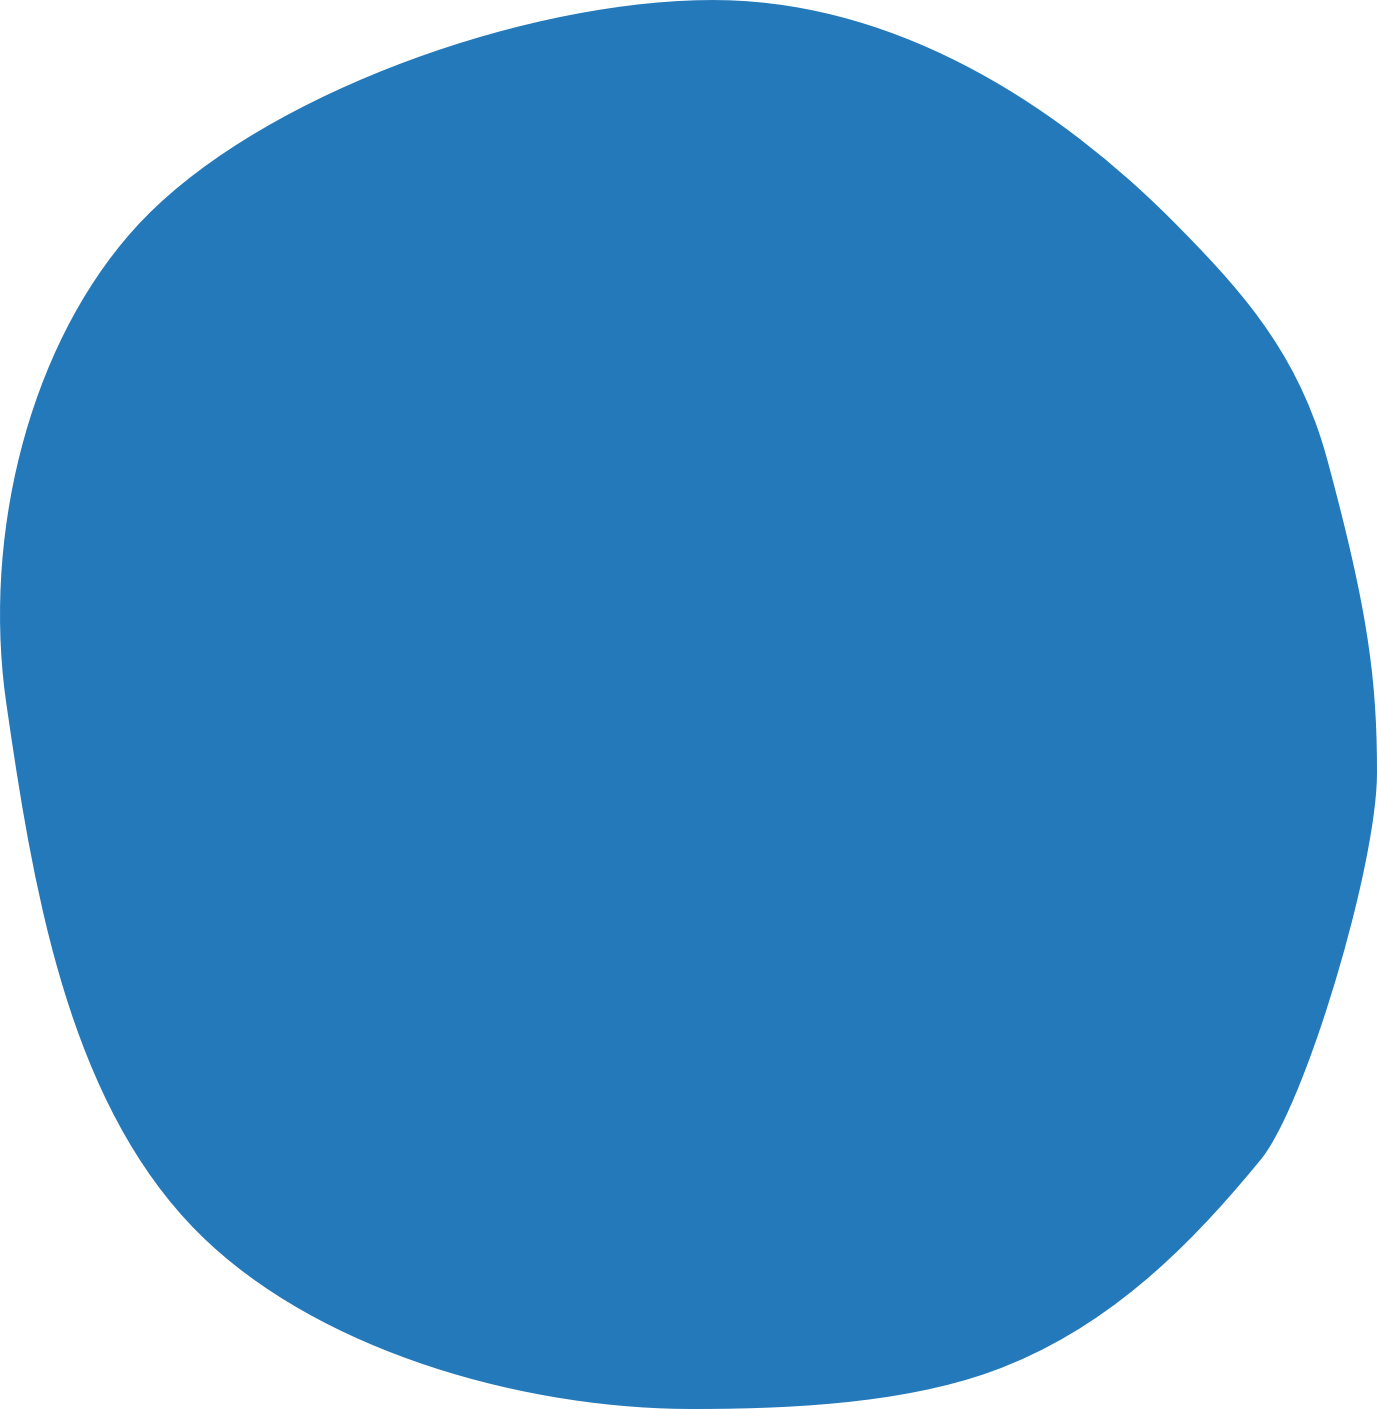 Oval 3 Copy 2.png